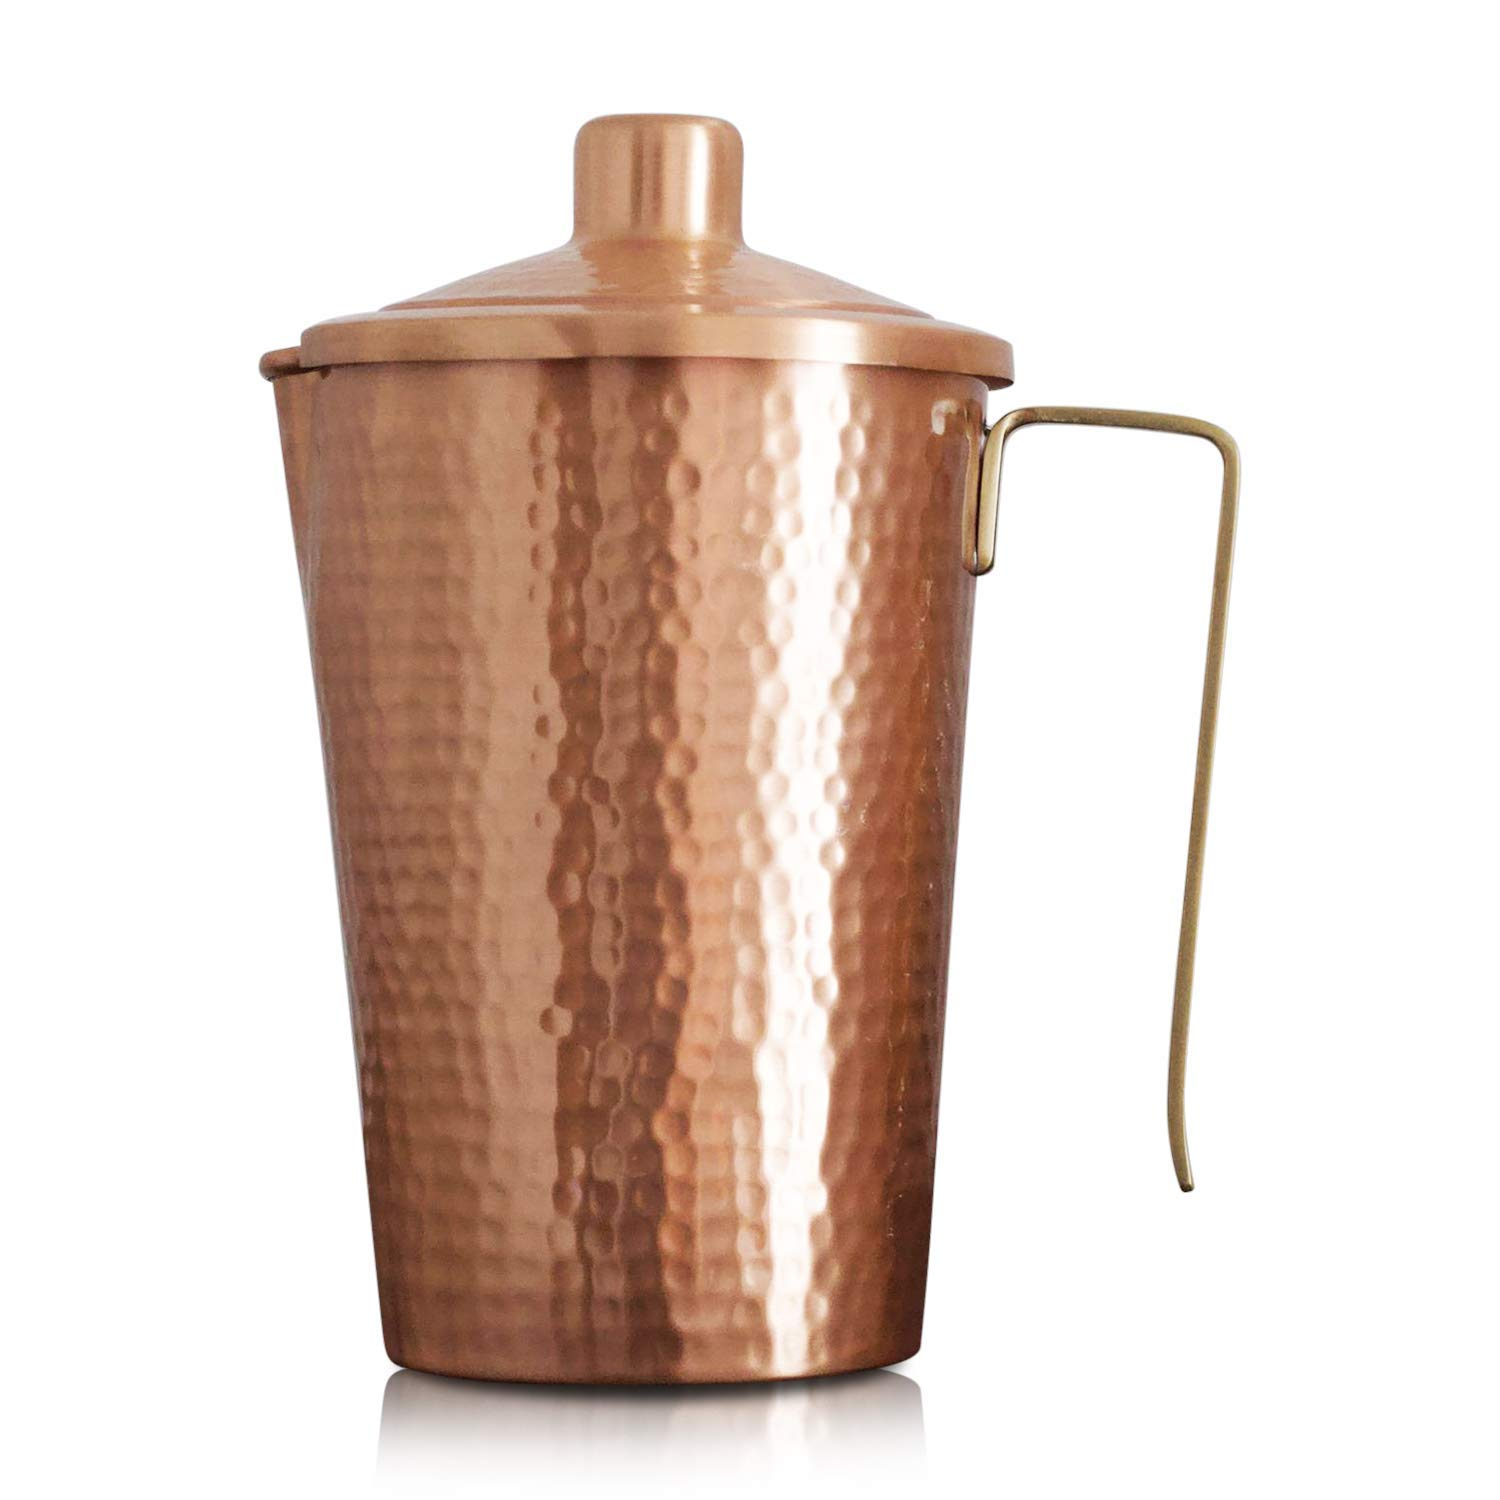 Kosdeg Copper Pitcher With Lid 44 Oz - Drink More Water, Lower Your Sugar Intake And Enjoy The Health Benefits Immediately - 100% Pure Copper Handmade Hammered Jug, Made From Heavy Gauge Copper